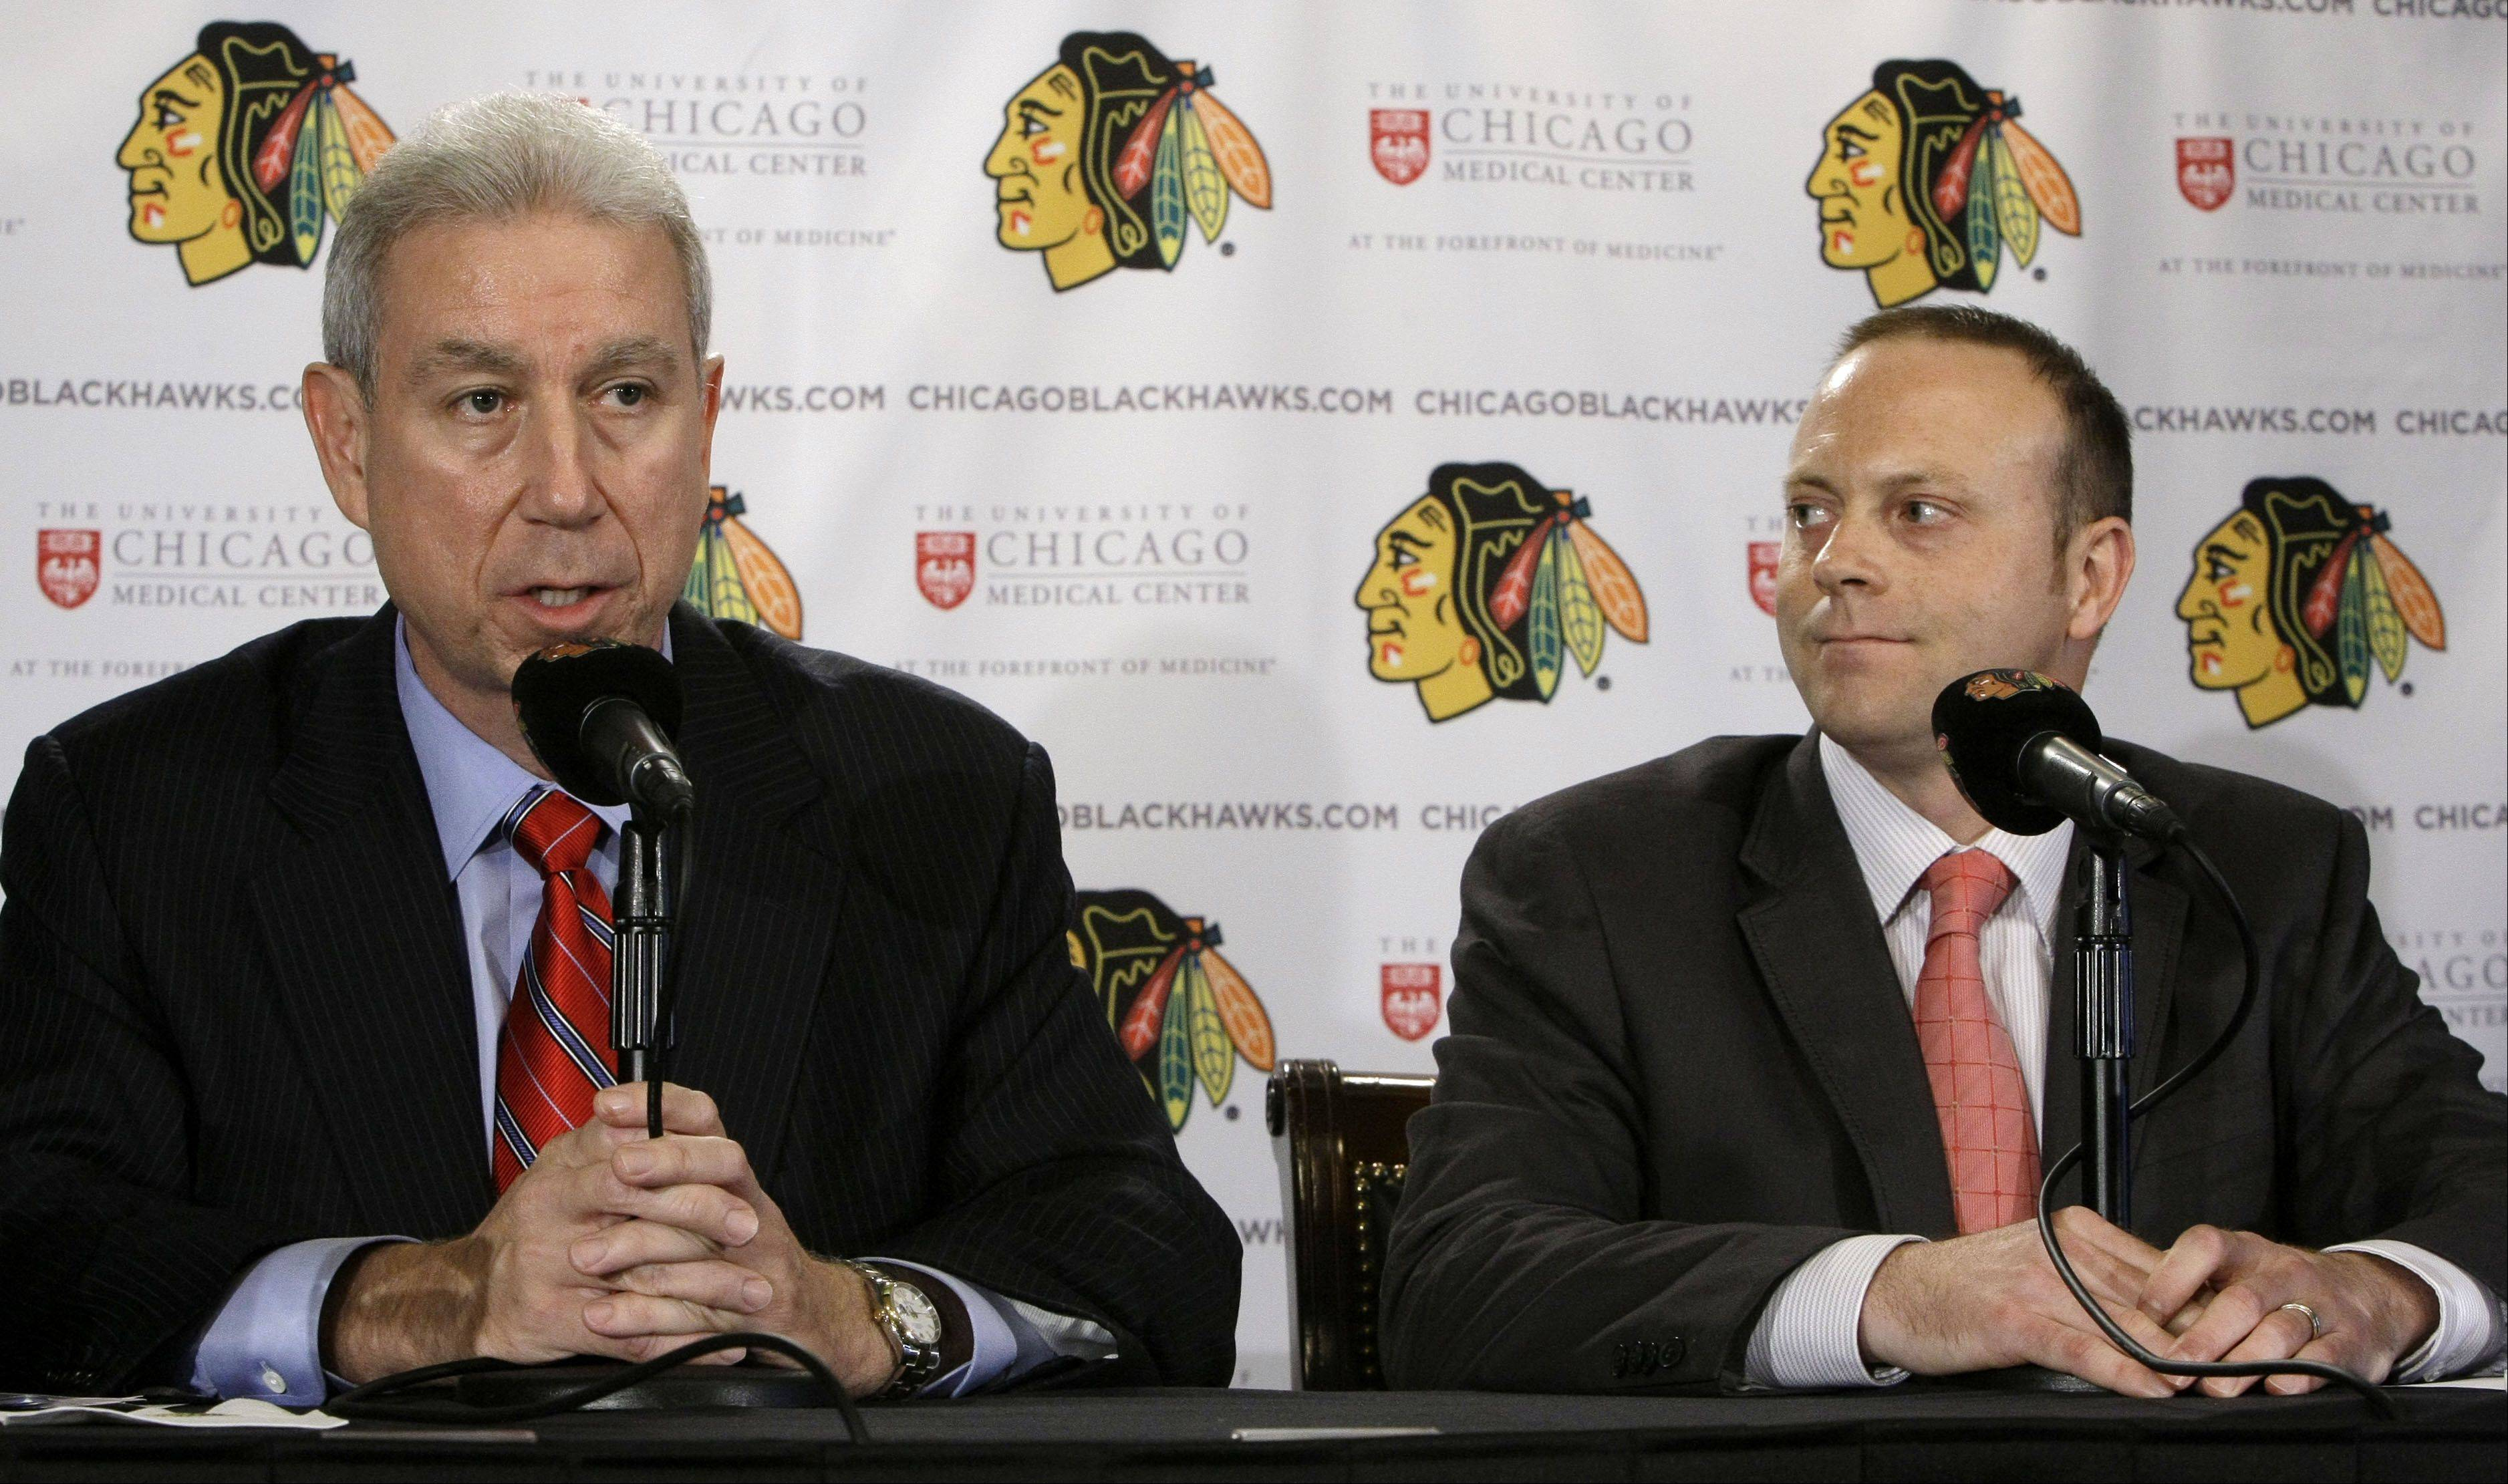 Chicago Blackhawks president John McDonough and GM Stan Bowman say they will miss Bill Peters. Peters, who coached the Blackhawks AHL affiliate for the past three seasons, signed a three-year contract Friday to join the Wings as an assistant to head coach Mike Babcock.